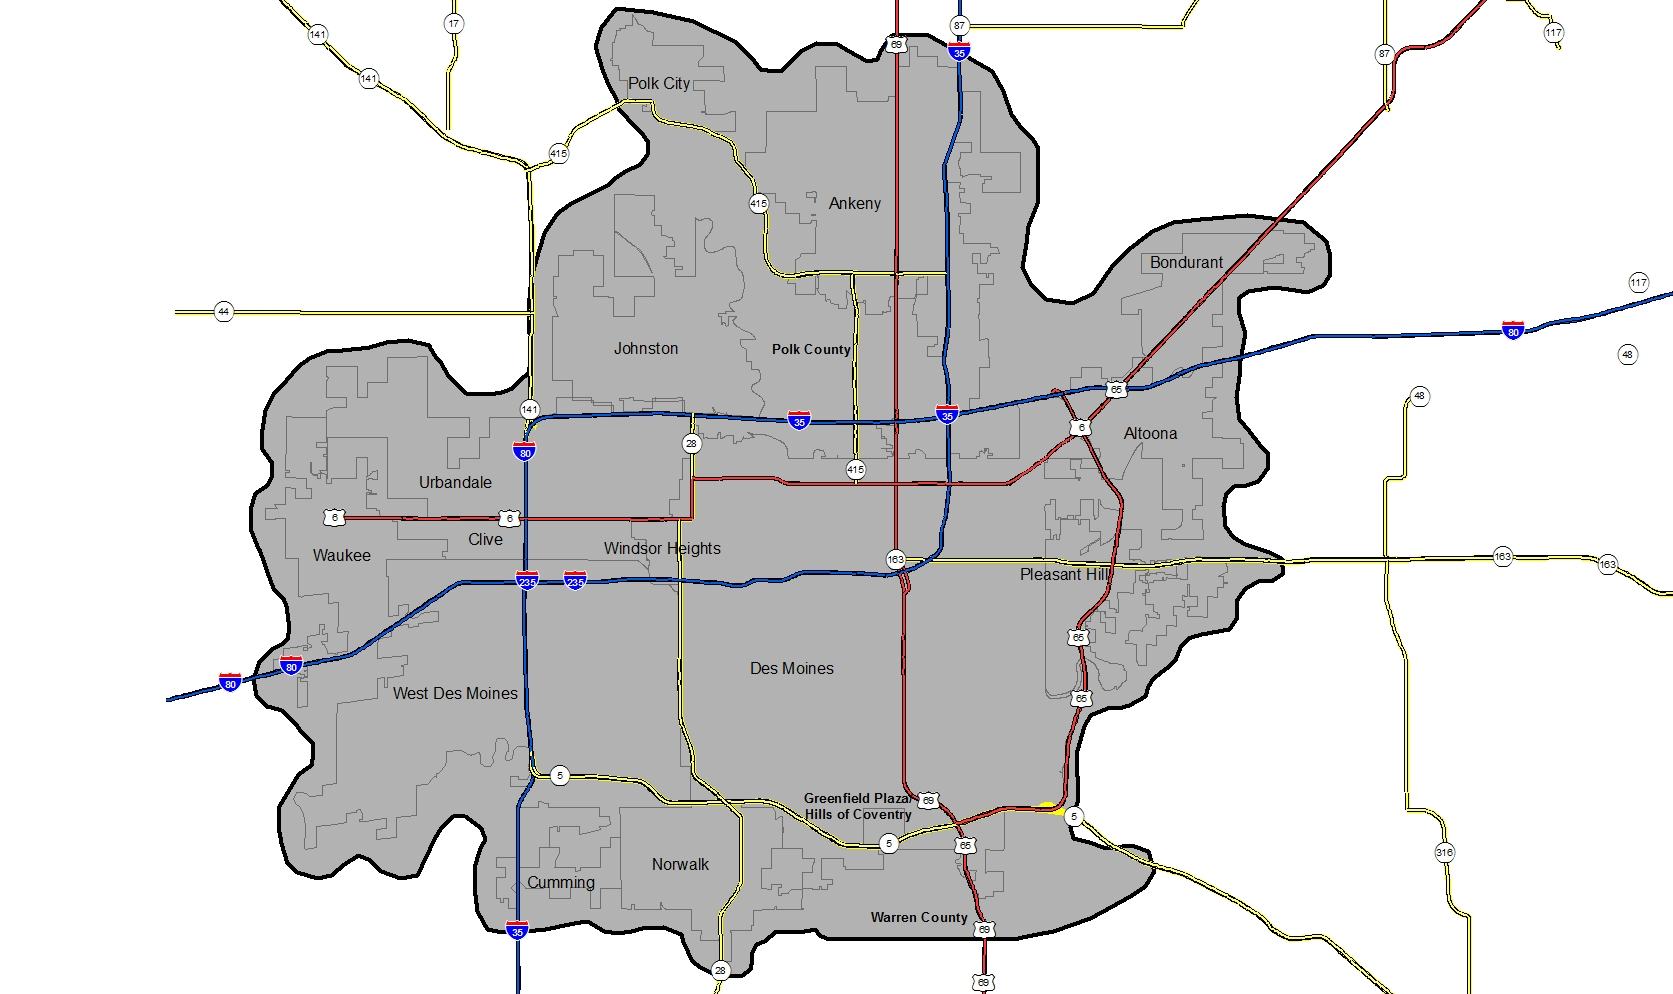 A map of the Des Moines metro area showing the Des Moines Metropolitan WRA's service area.